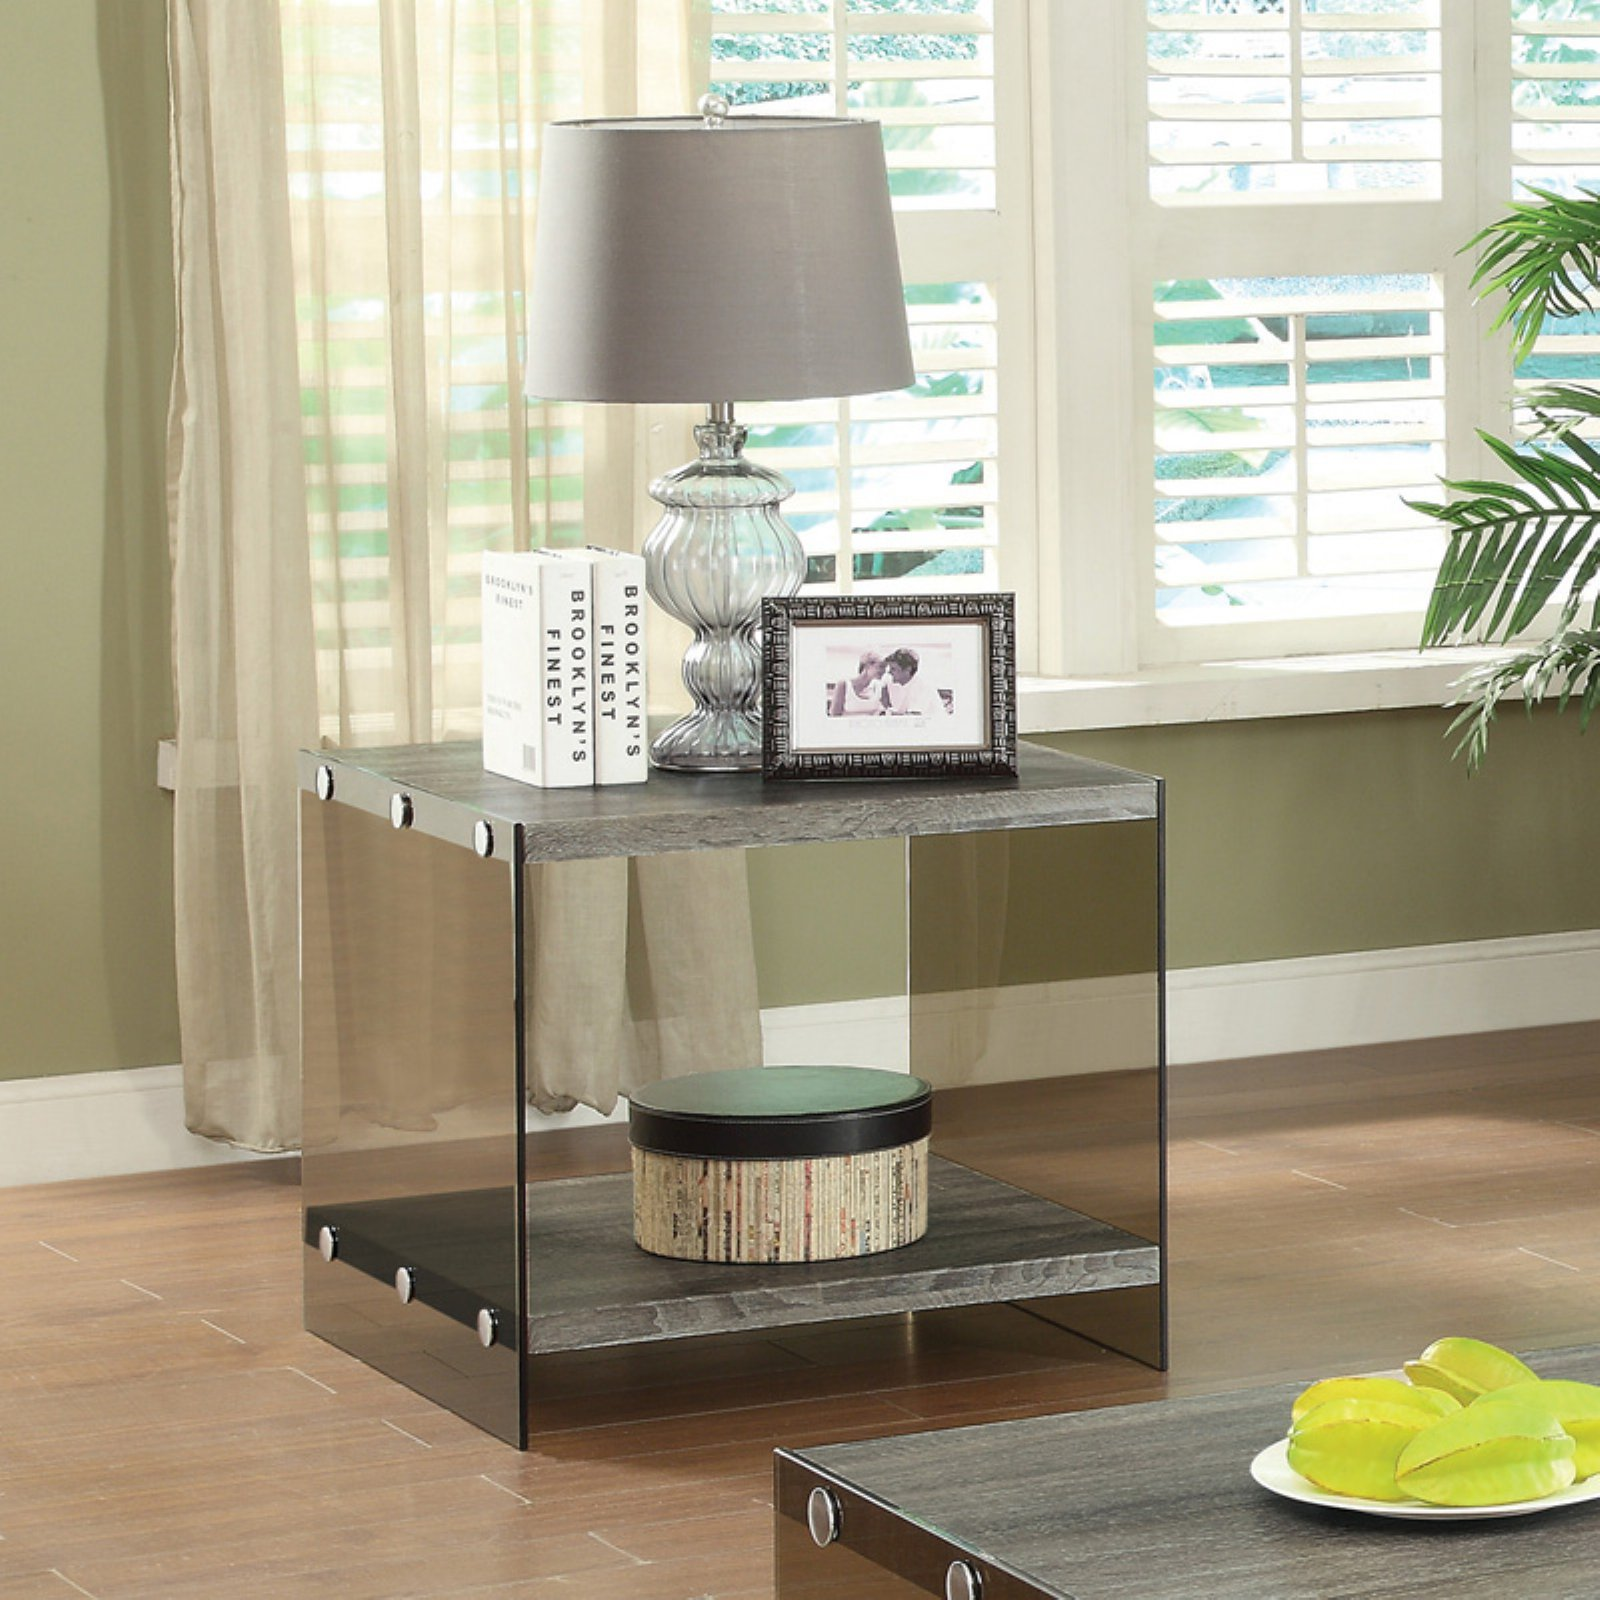 Coaster Contemporary End Table, Grey Finish